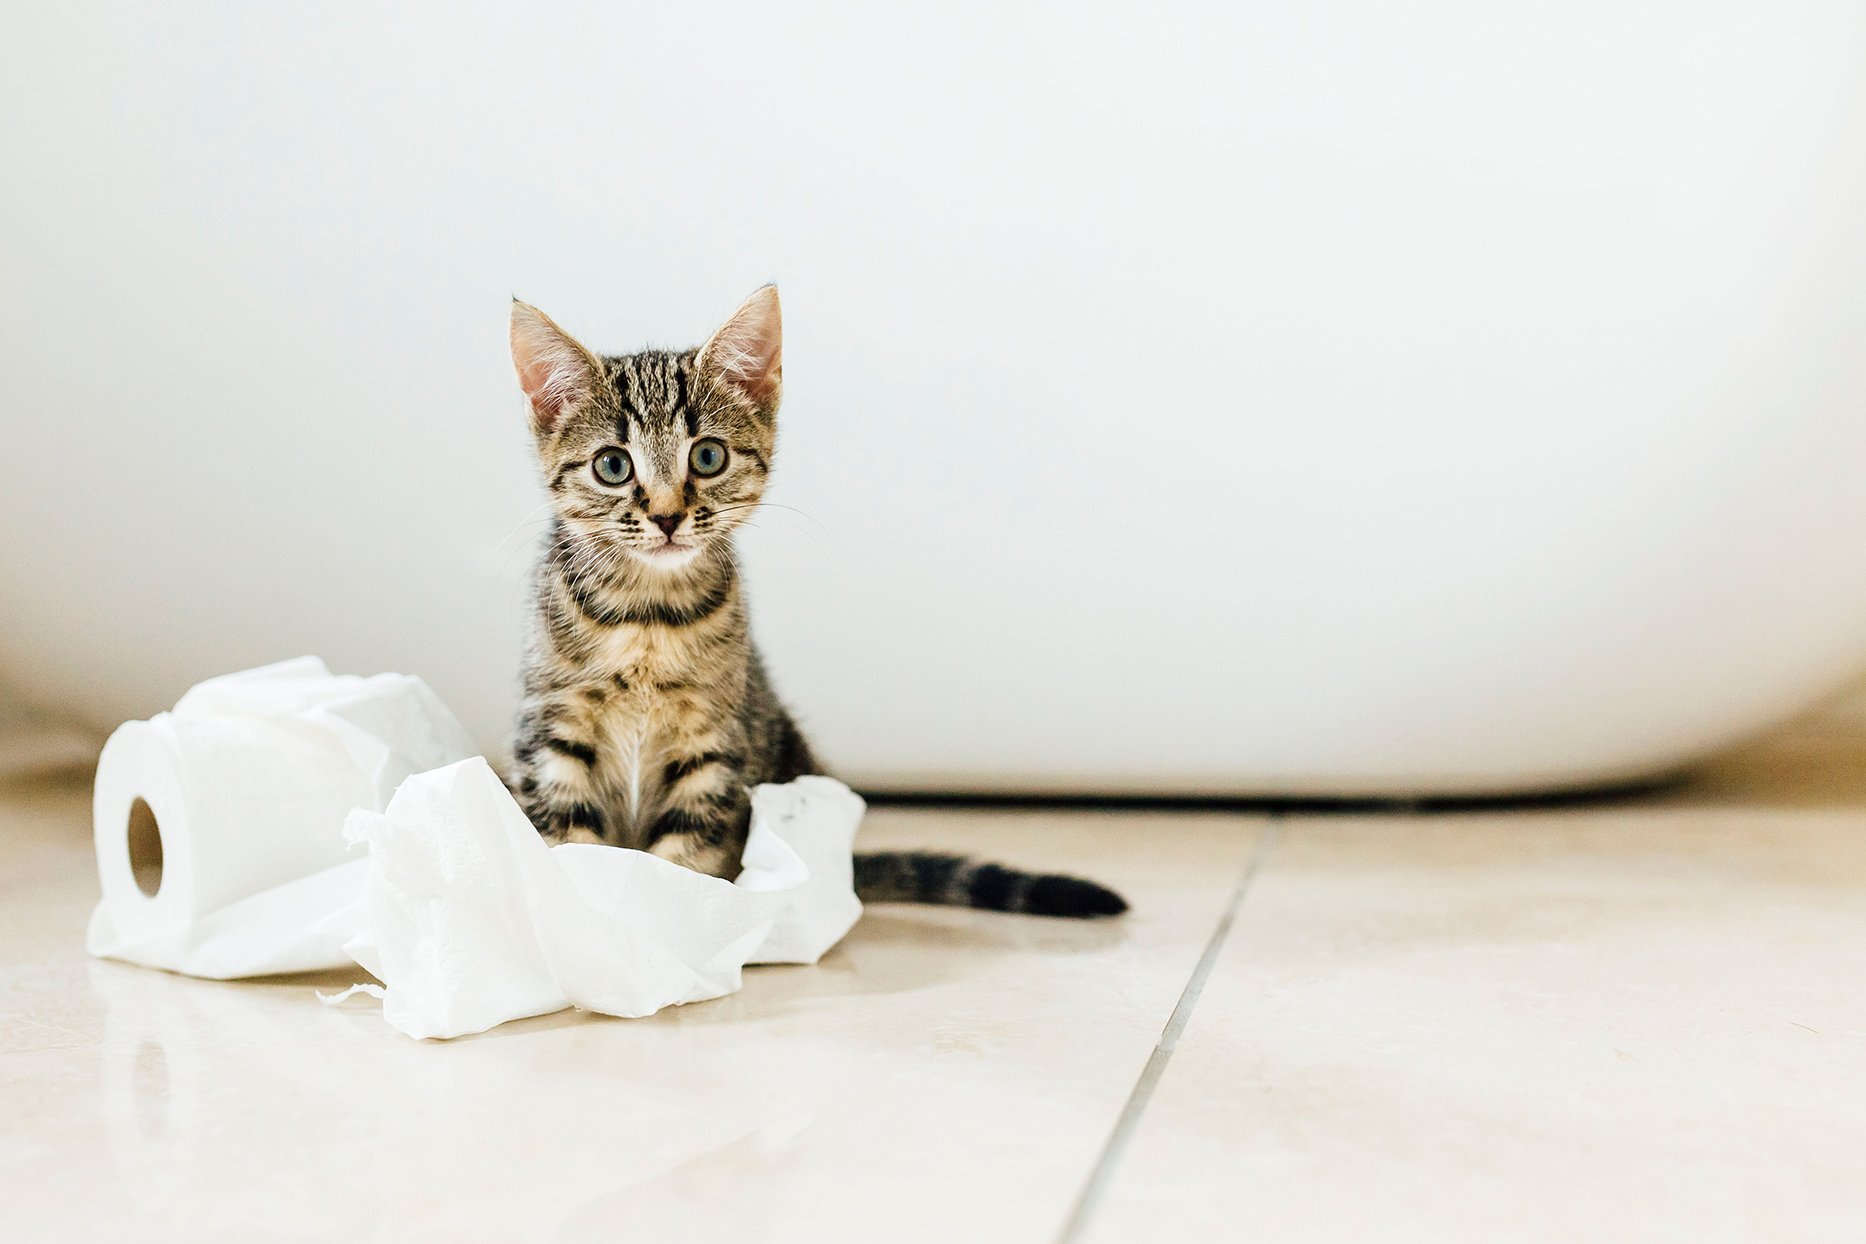 kitten playing with toilet paper in bathroom